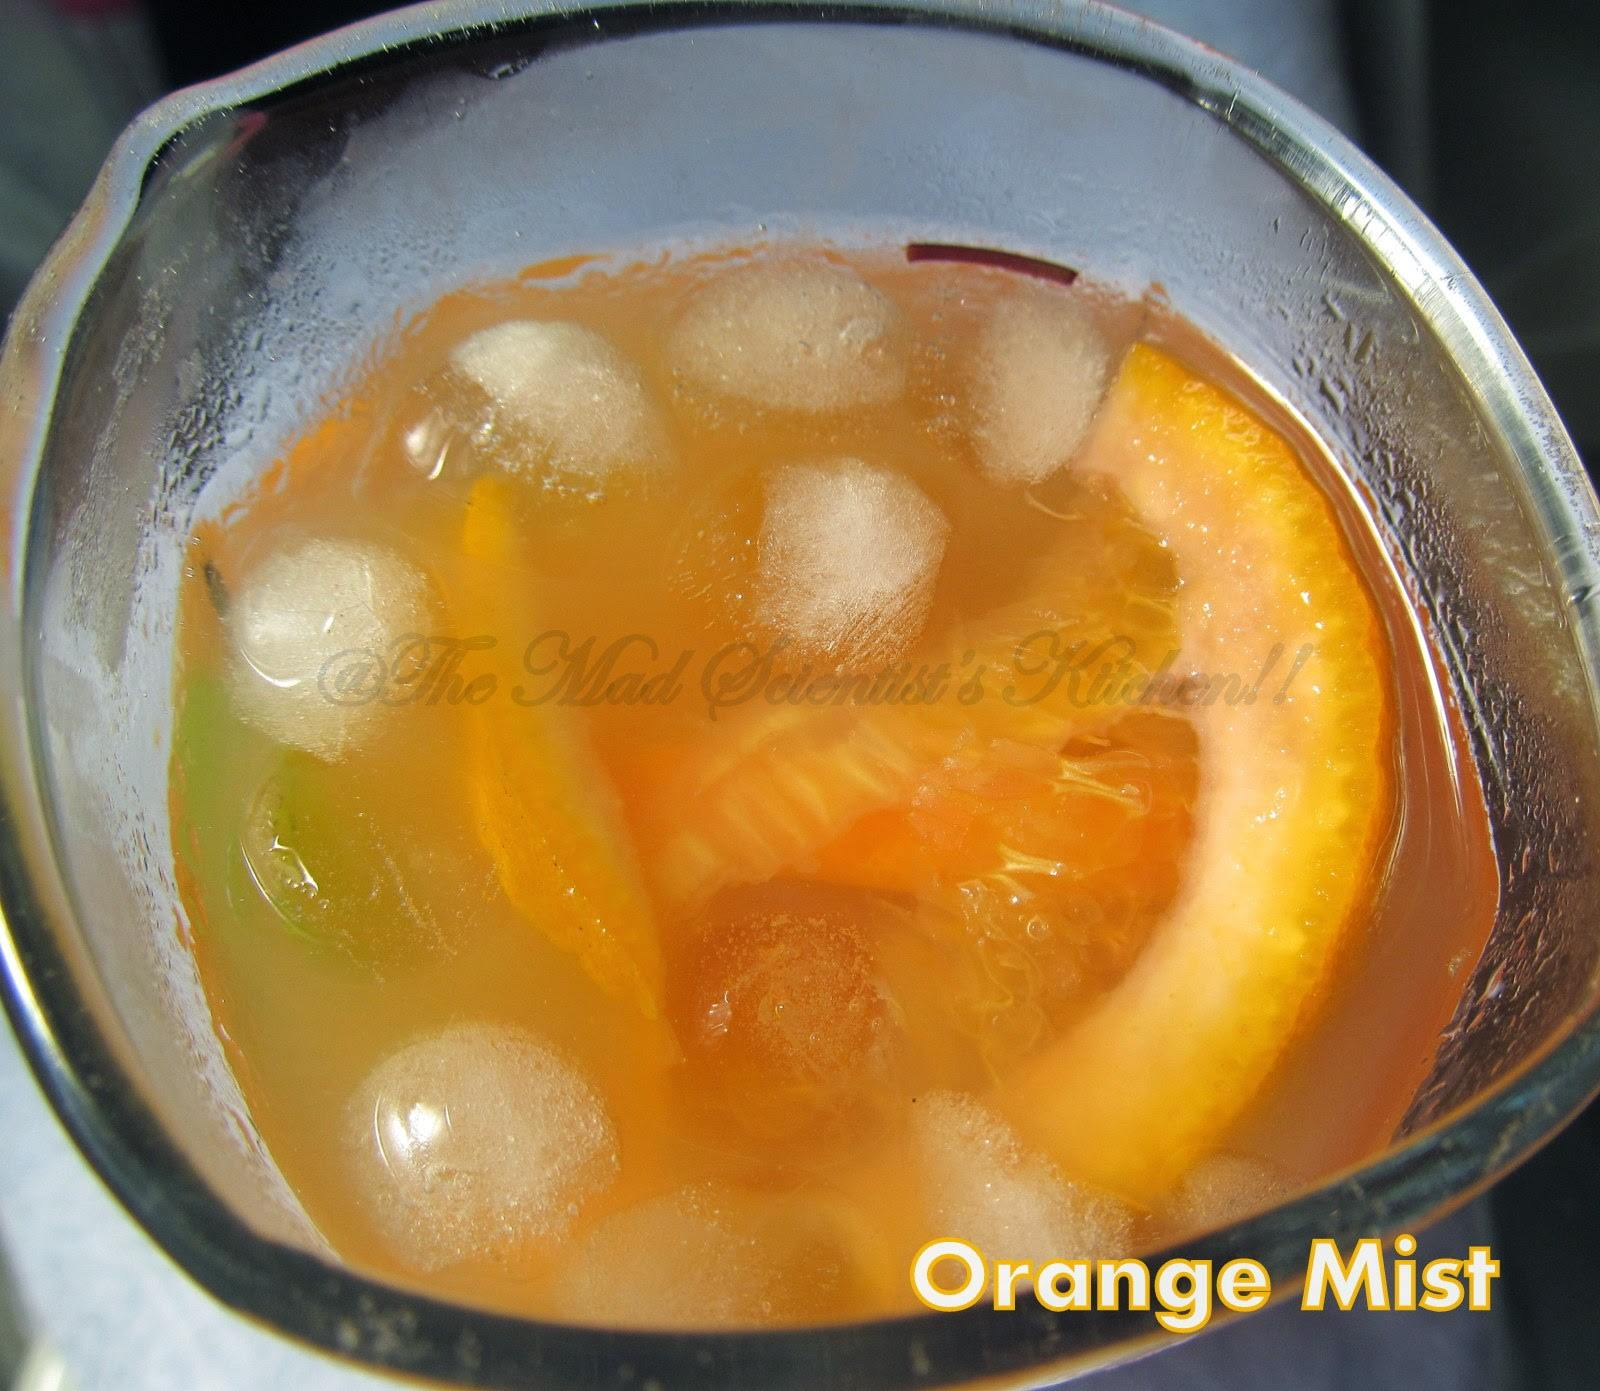 Orange Mist, a Mocktail